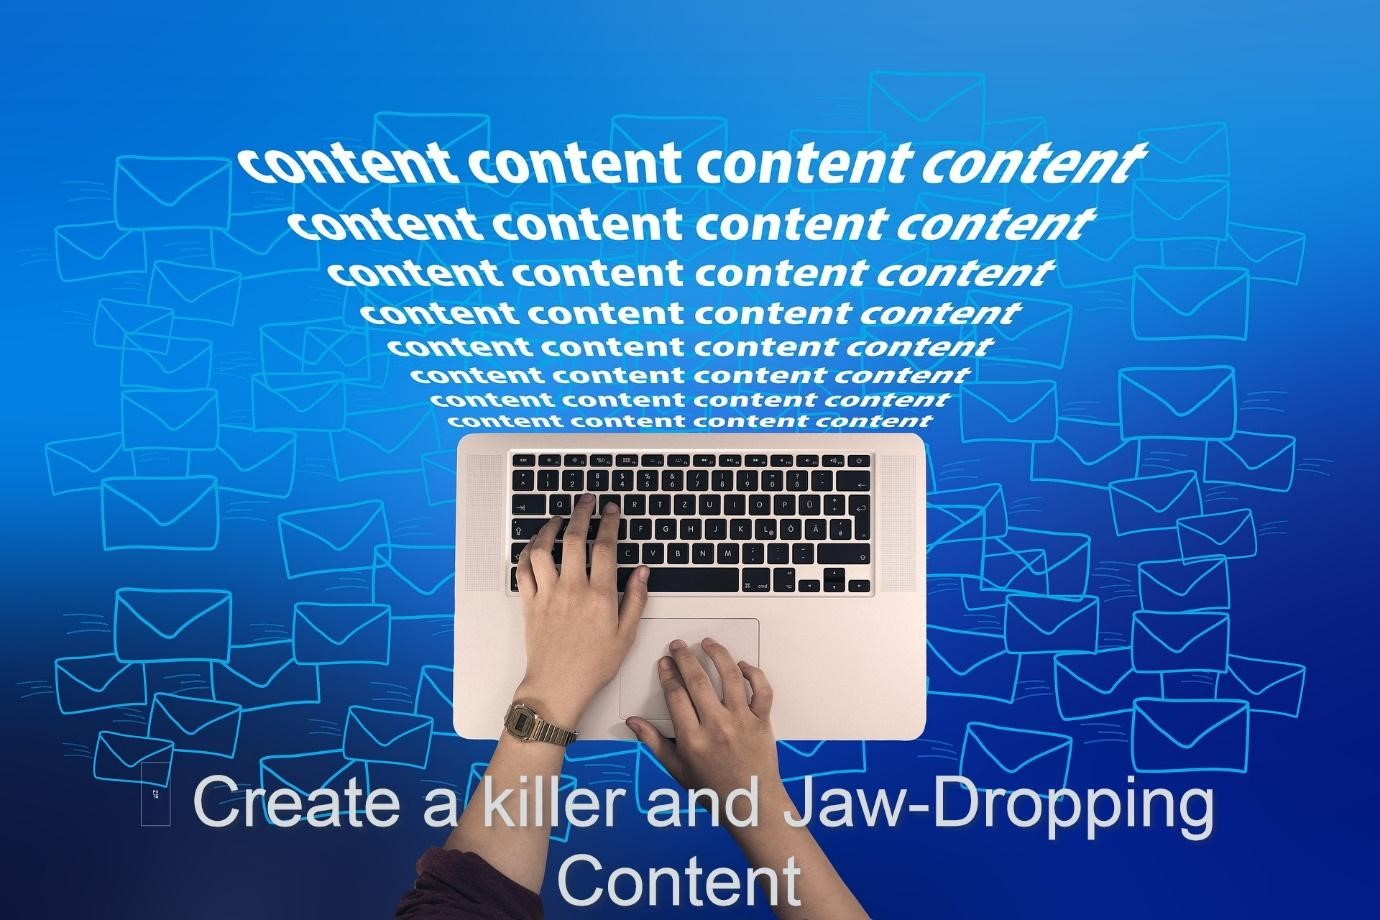 Create a killer and Jaw-Dropping Content